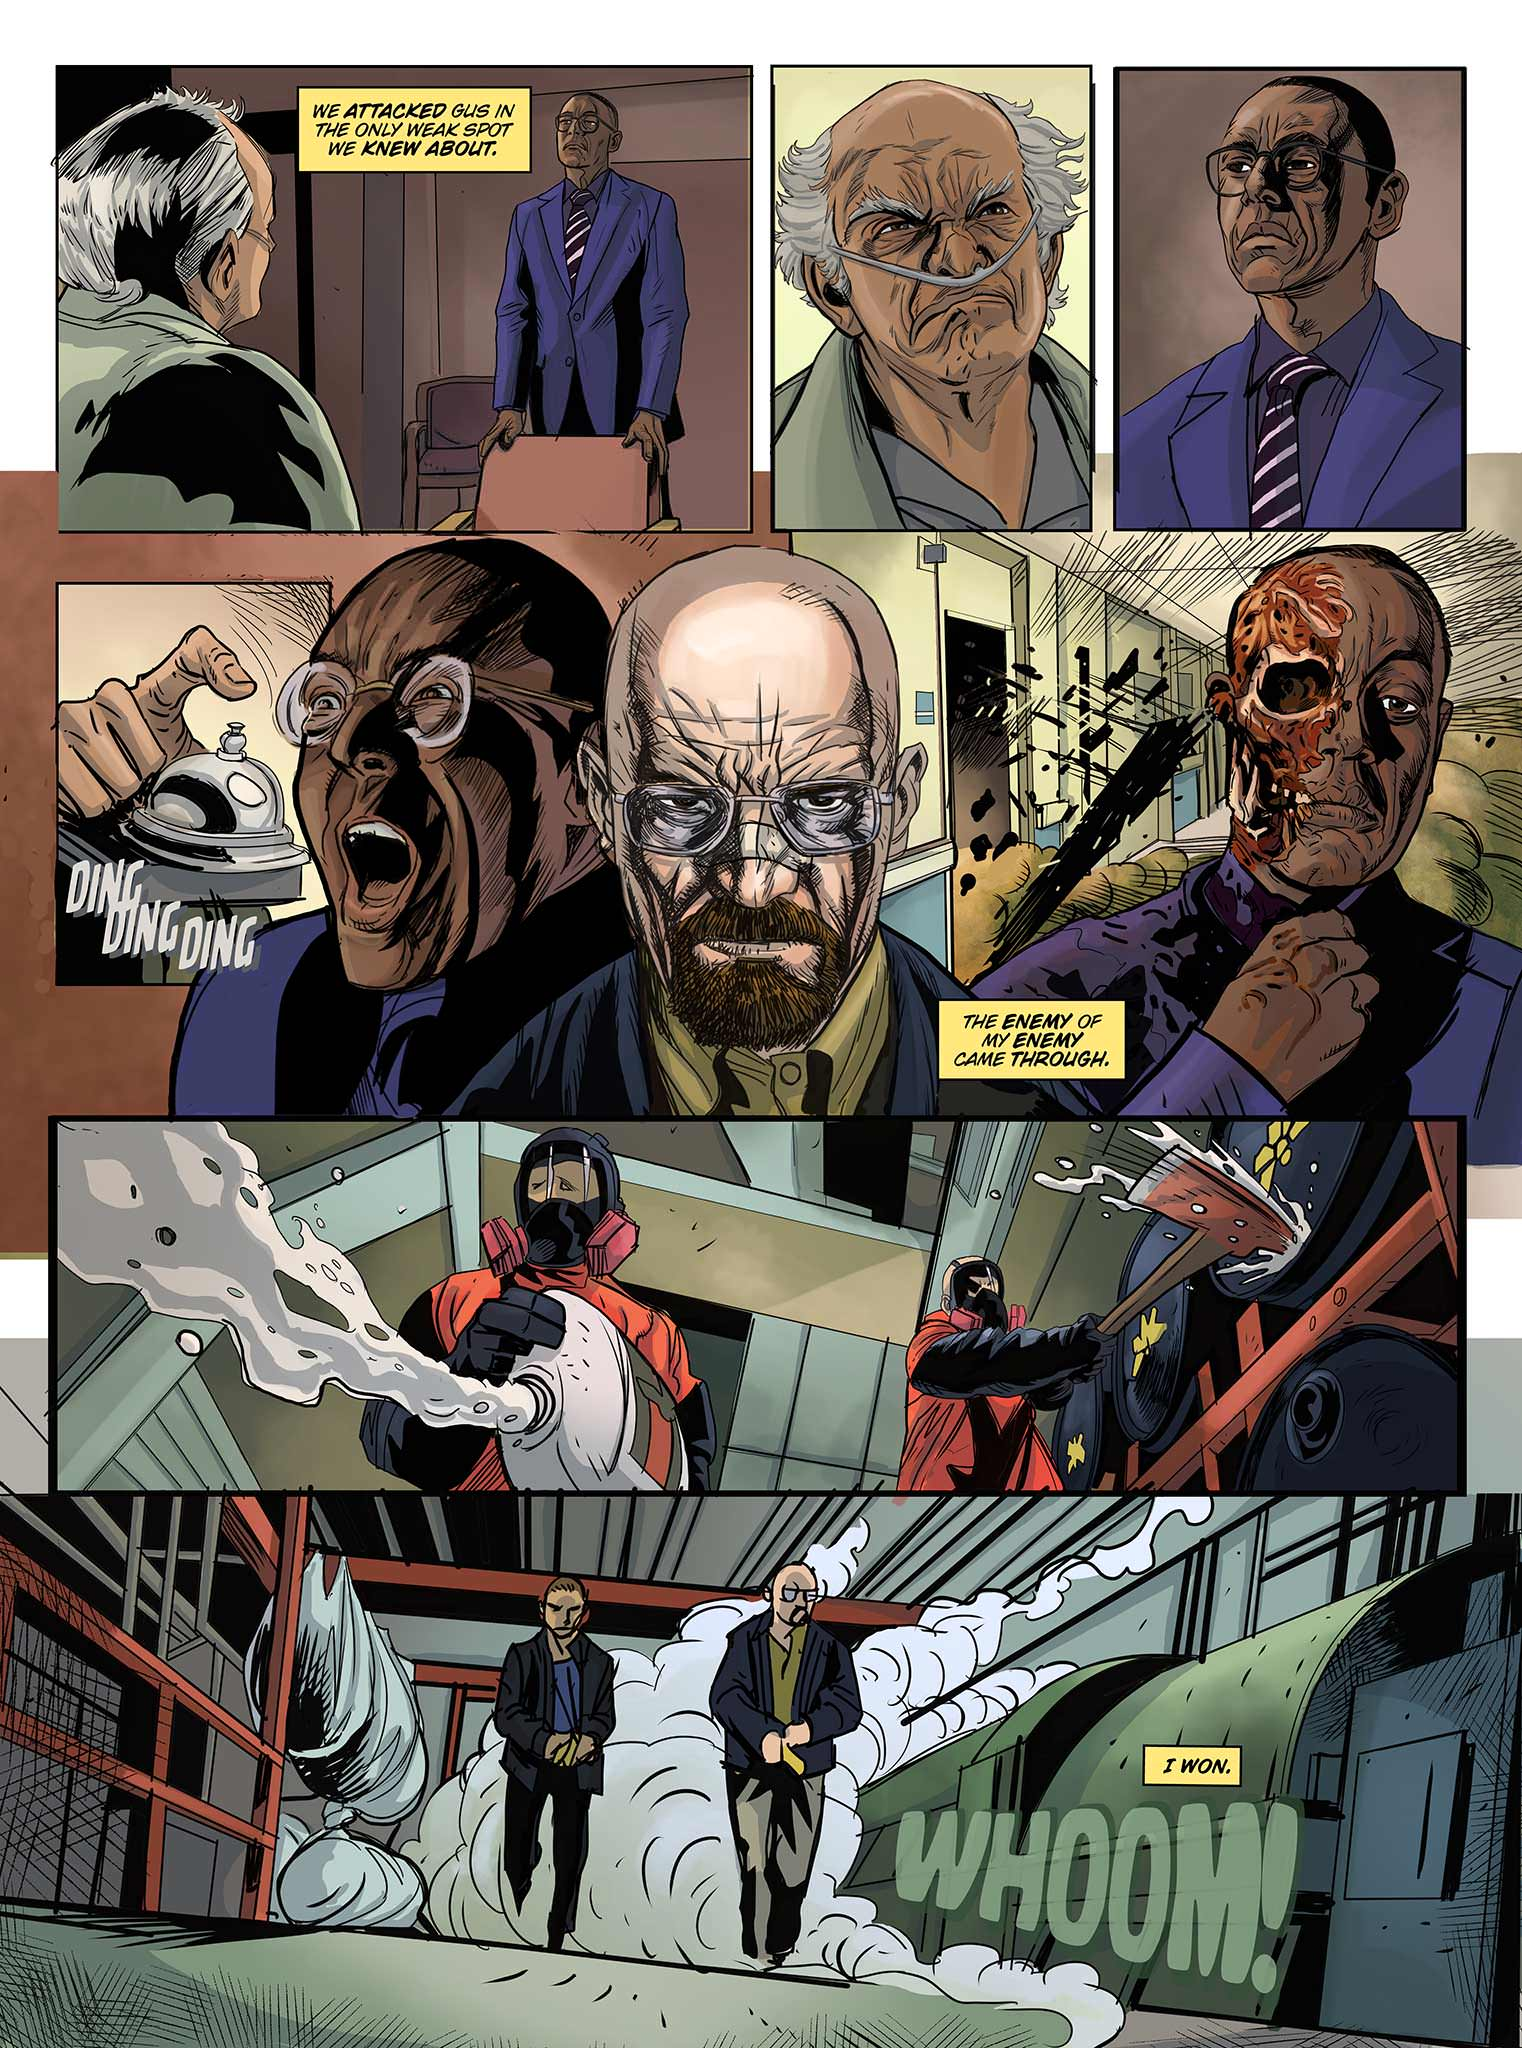 Read online Breaking Bad: All Bad Things comic -  Issue # Full - 17